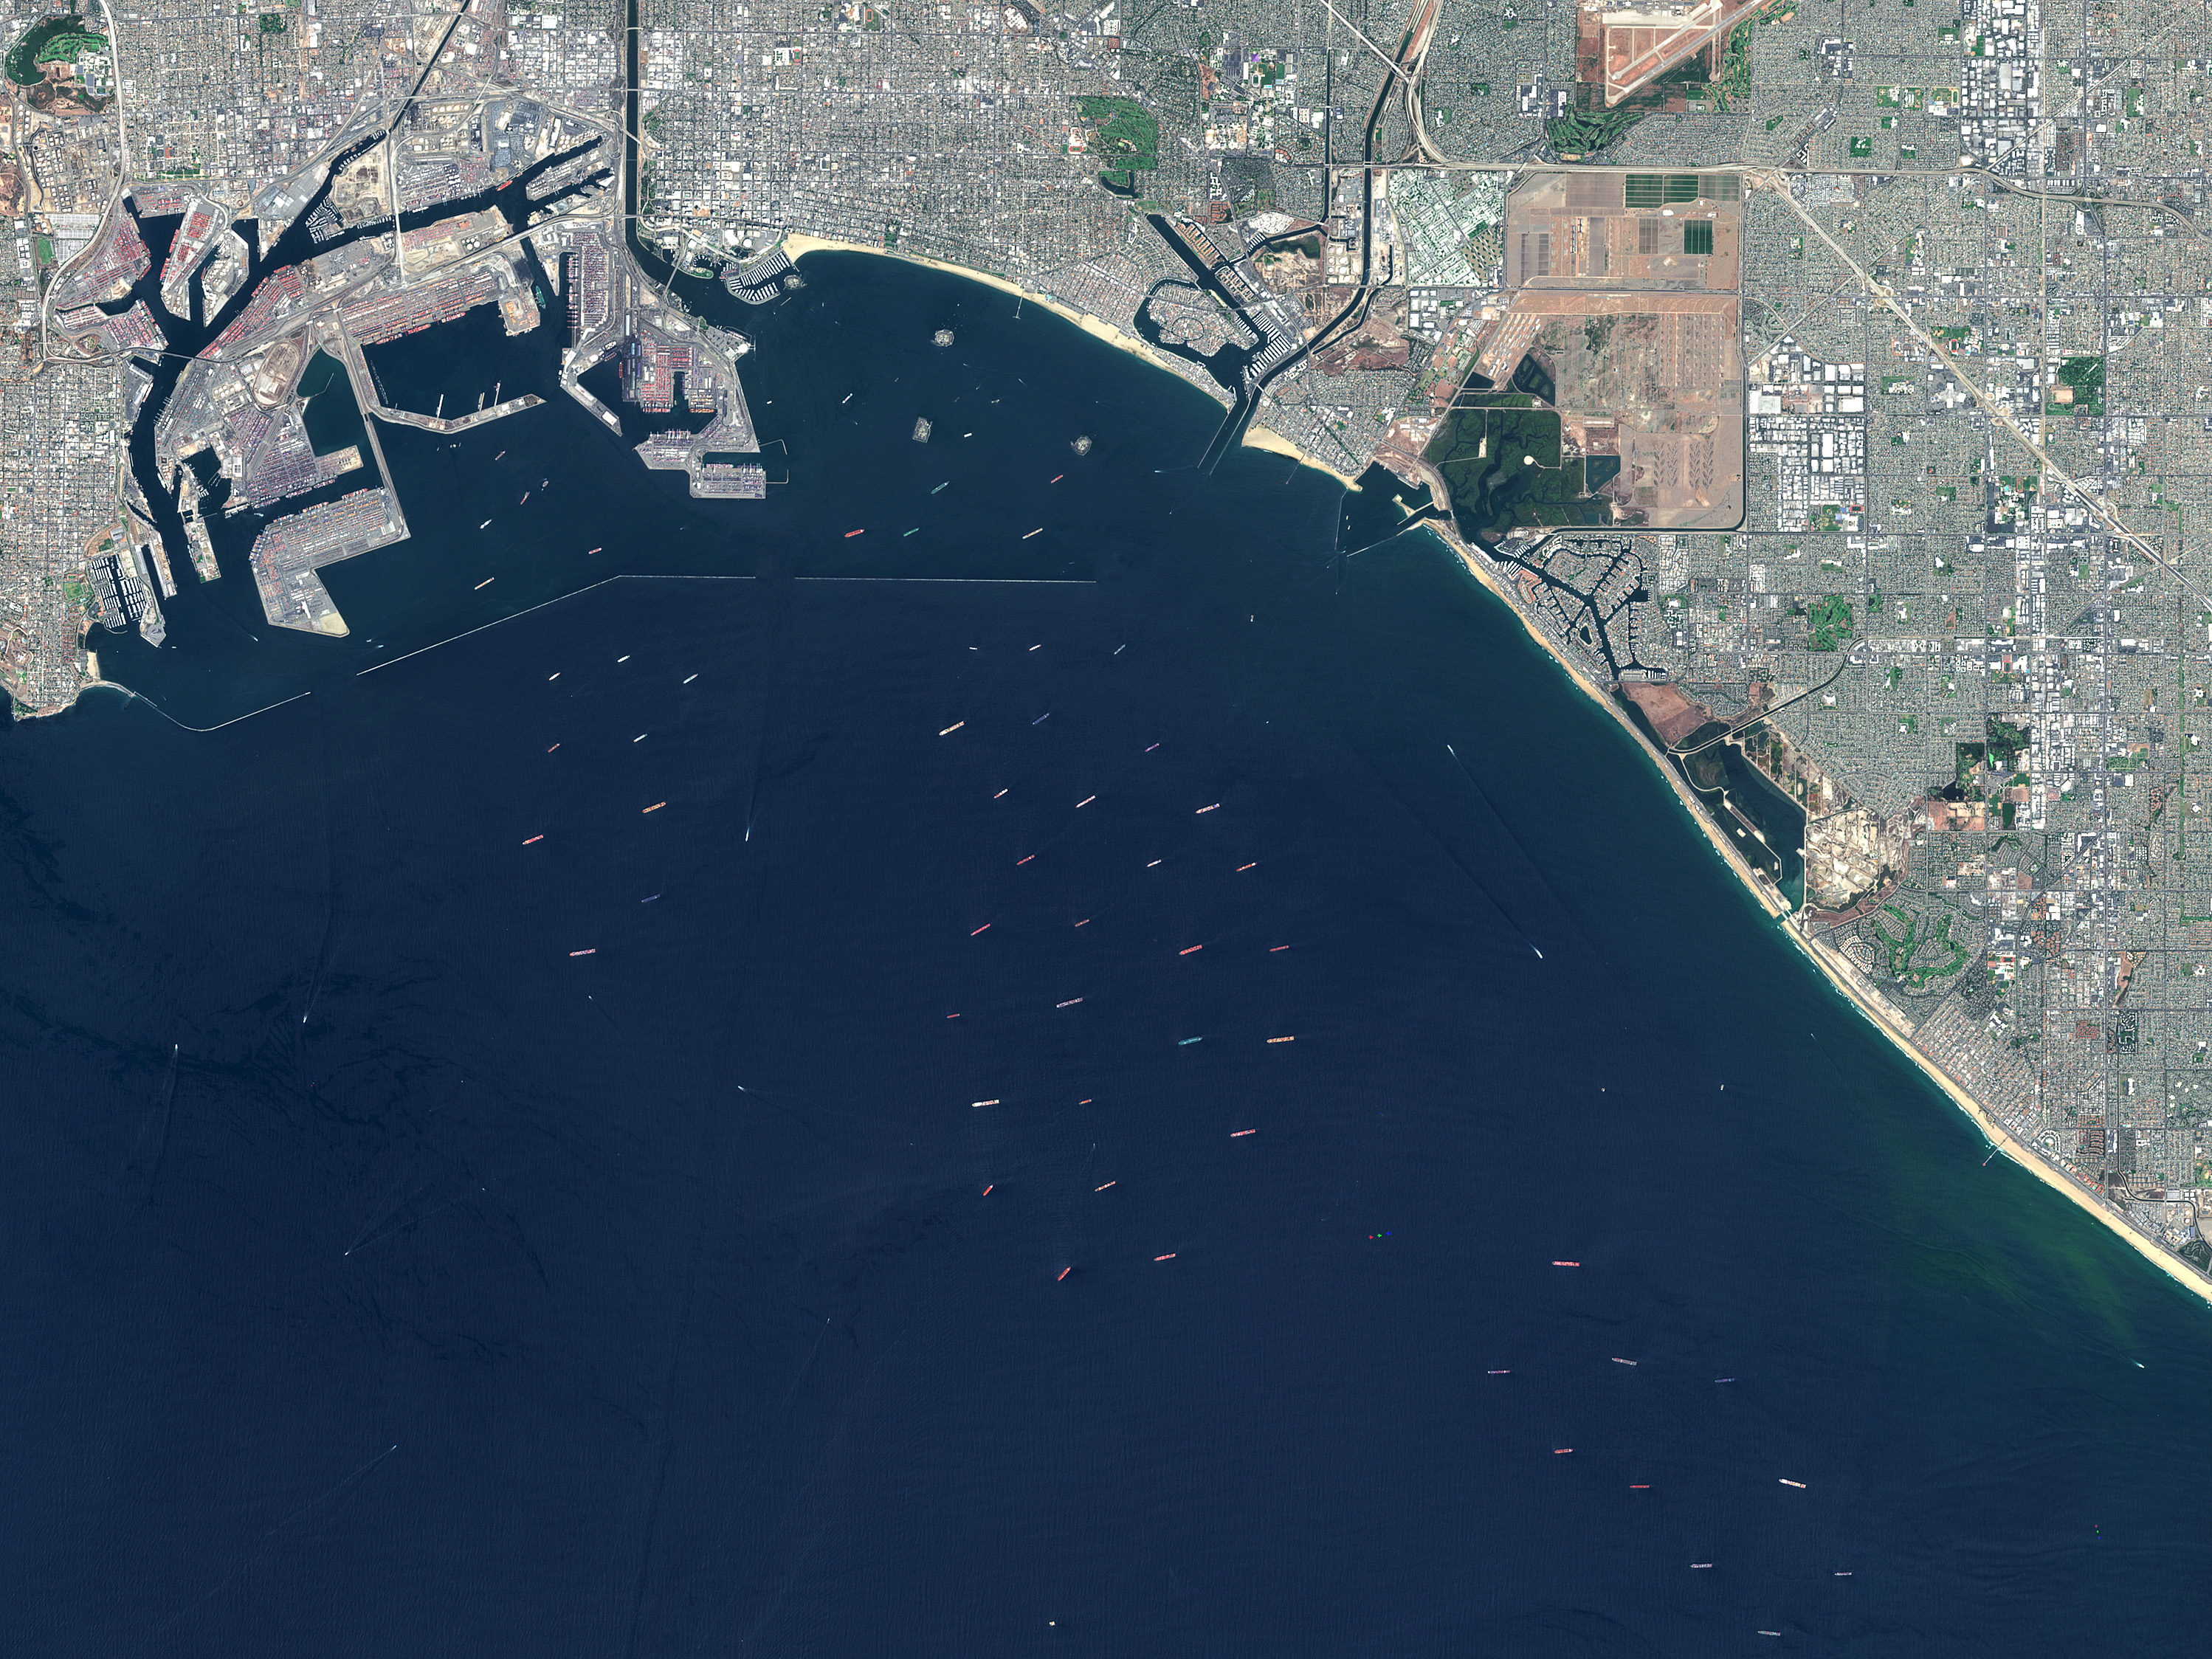 Satellite image of the ports of Los Angeles and Long Beach with dozens of ships offshore